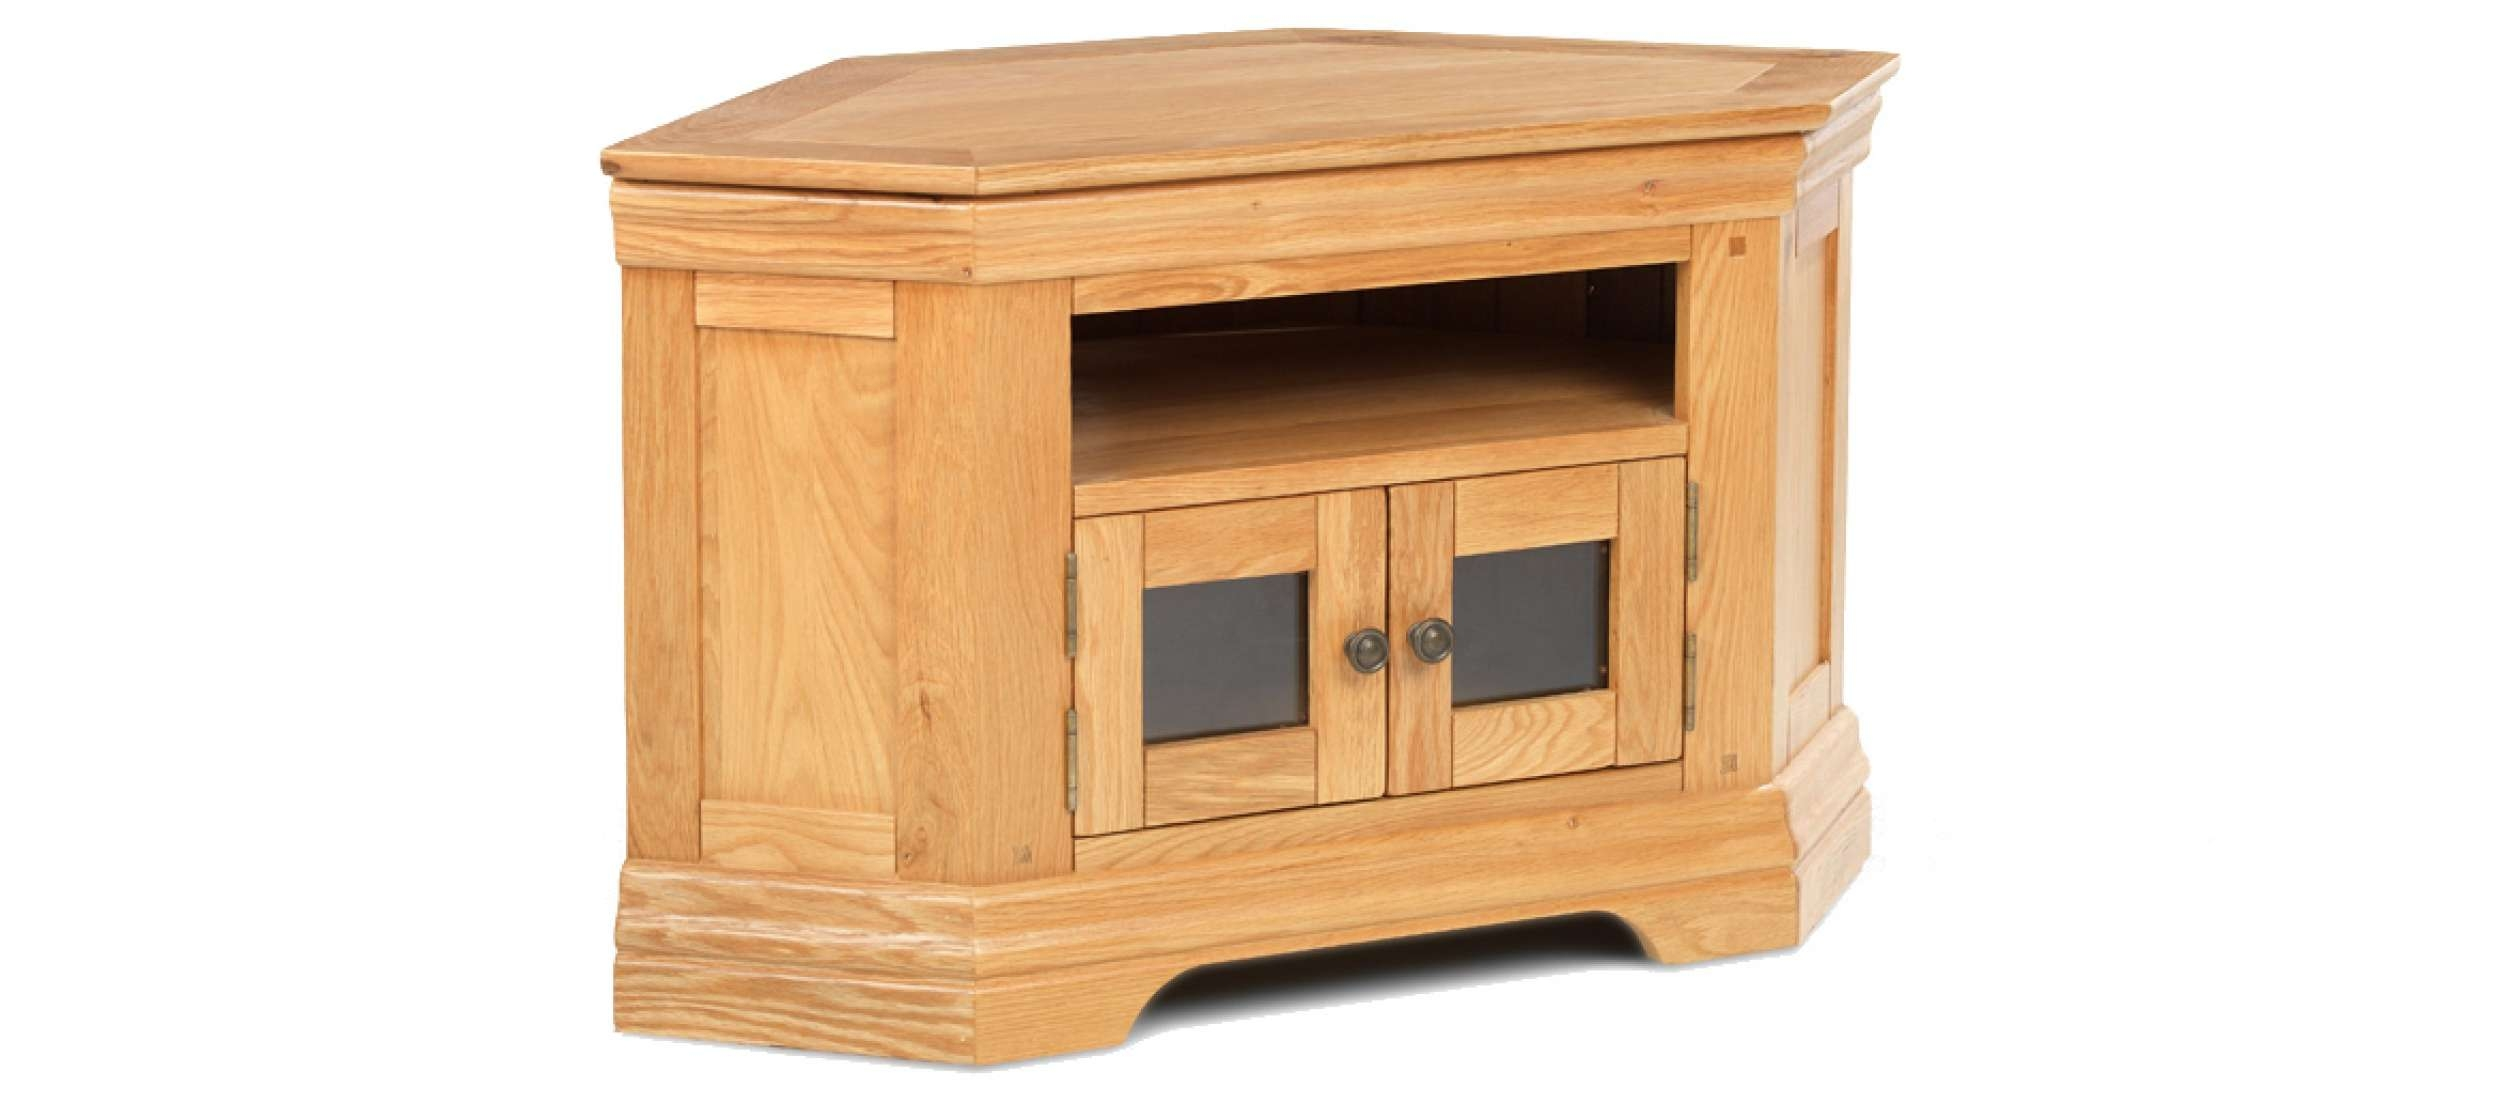 Constance Oak Corner Tv Cabinet | Quercus Living Inside Rustic Corner Tv Cabinets (View 5 of 20)